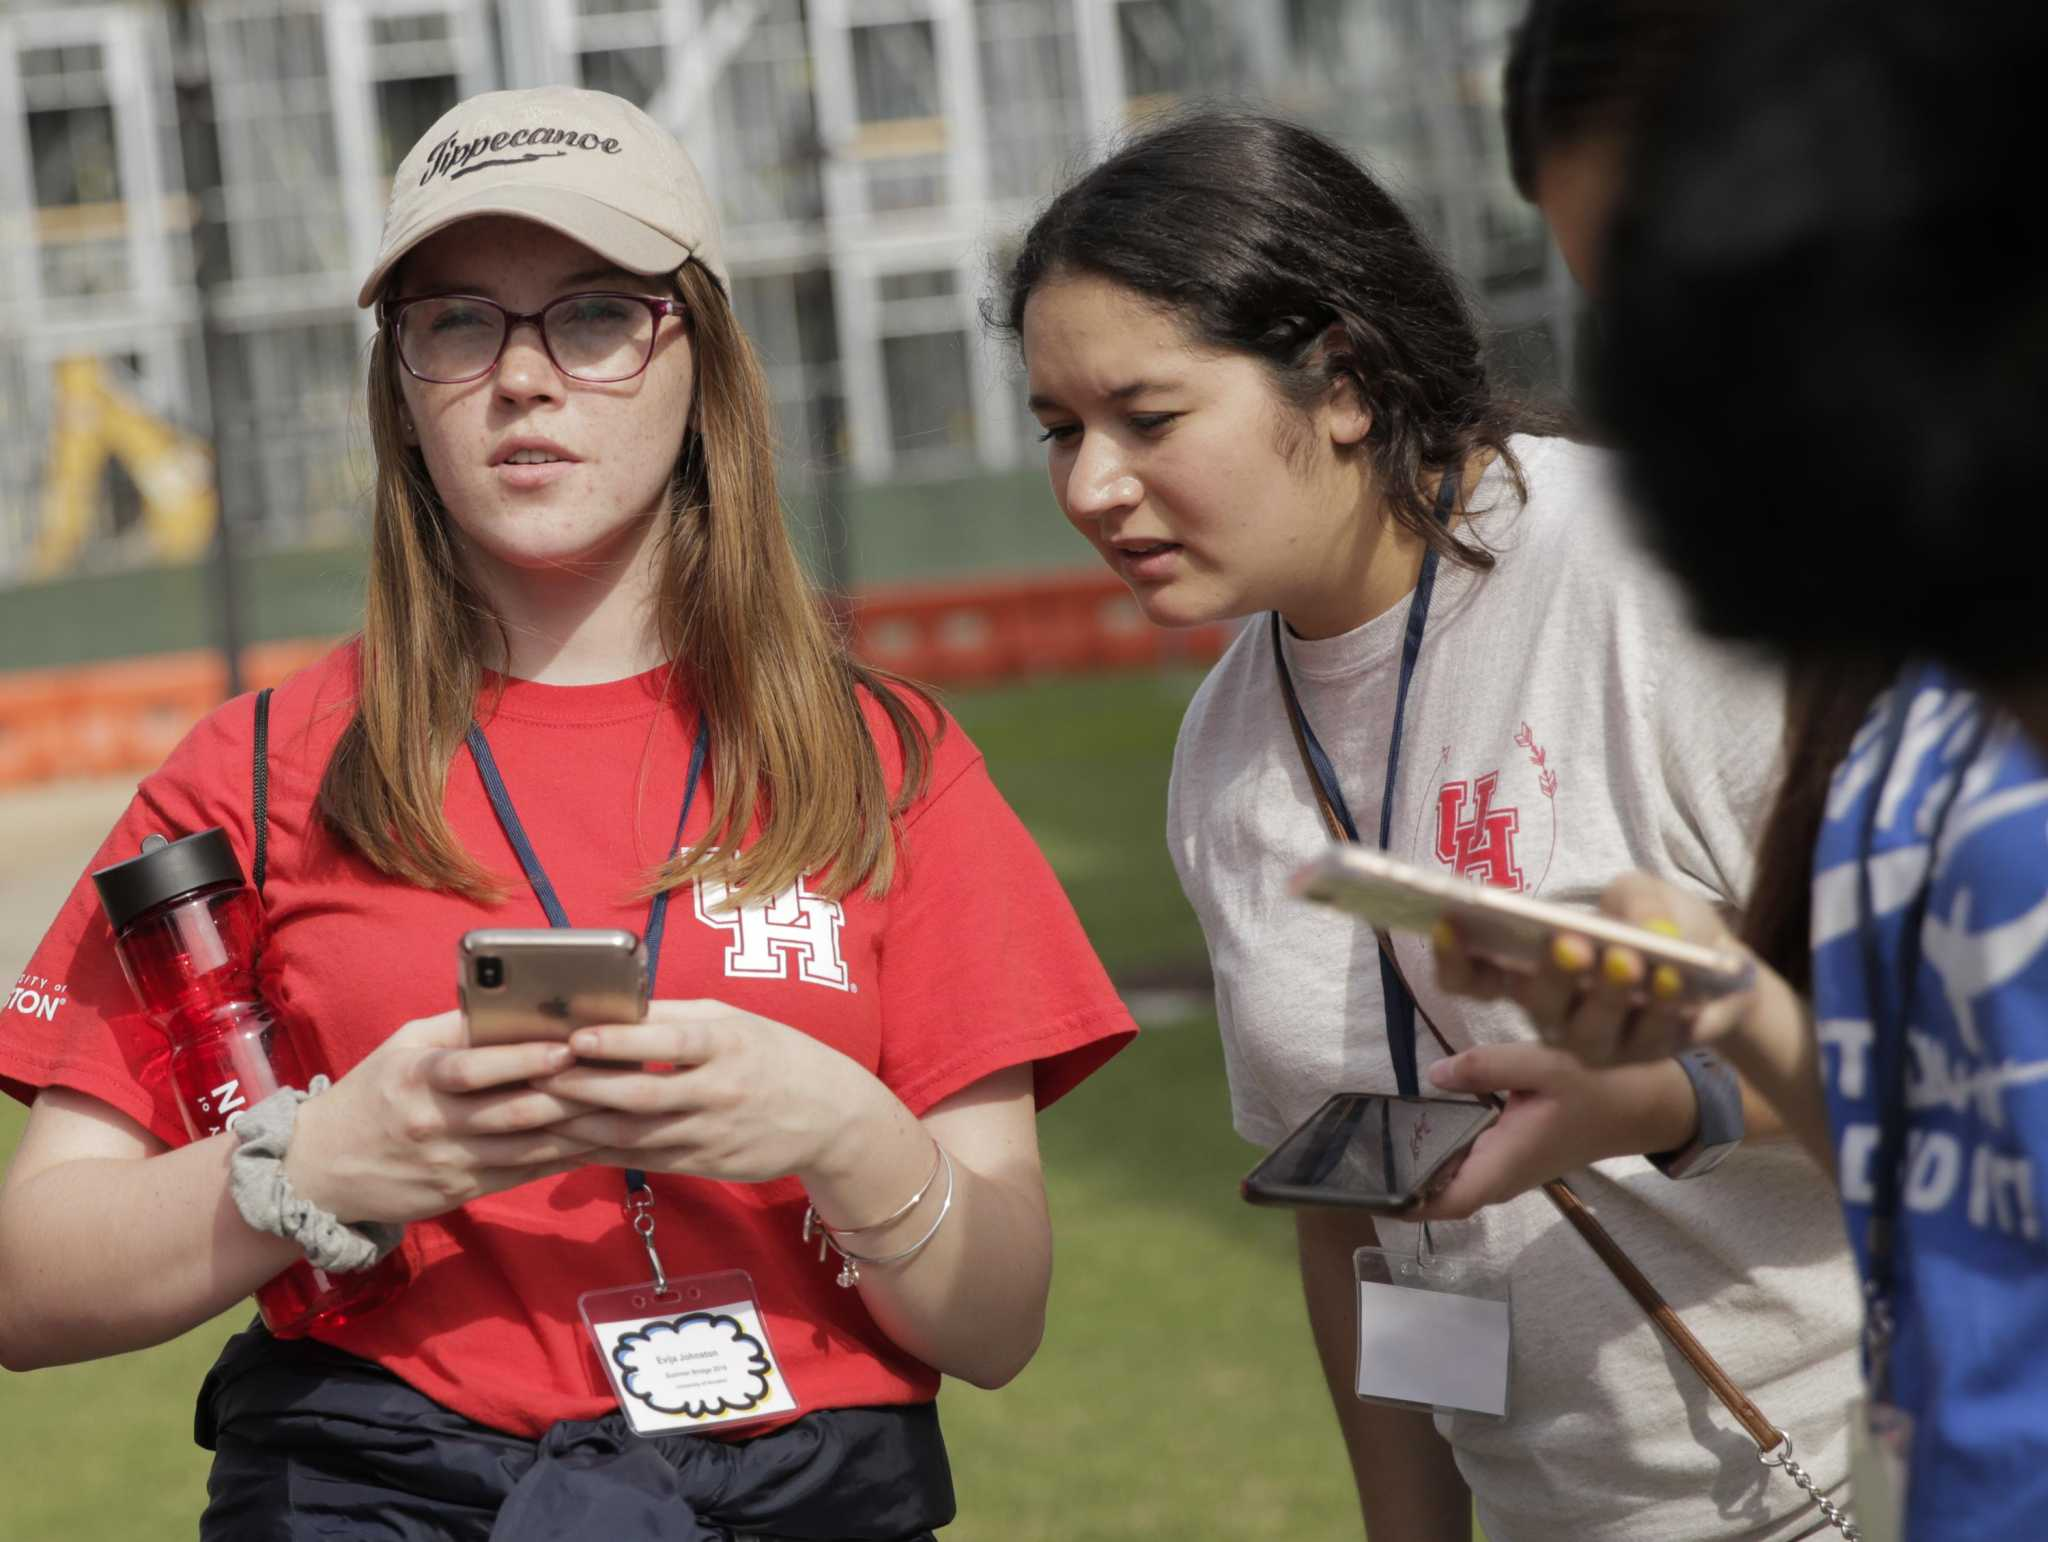 UH launches $17M program for former foster youth